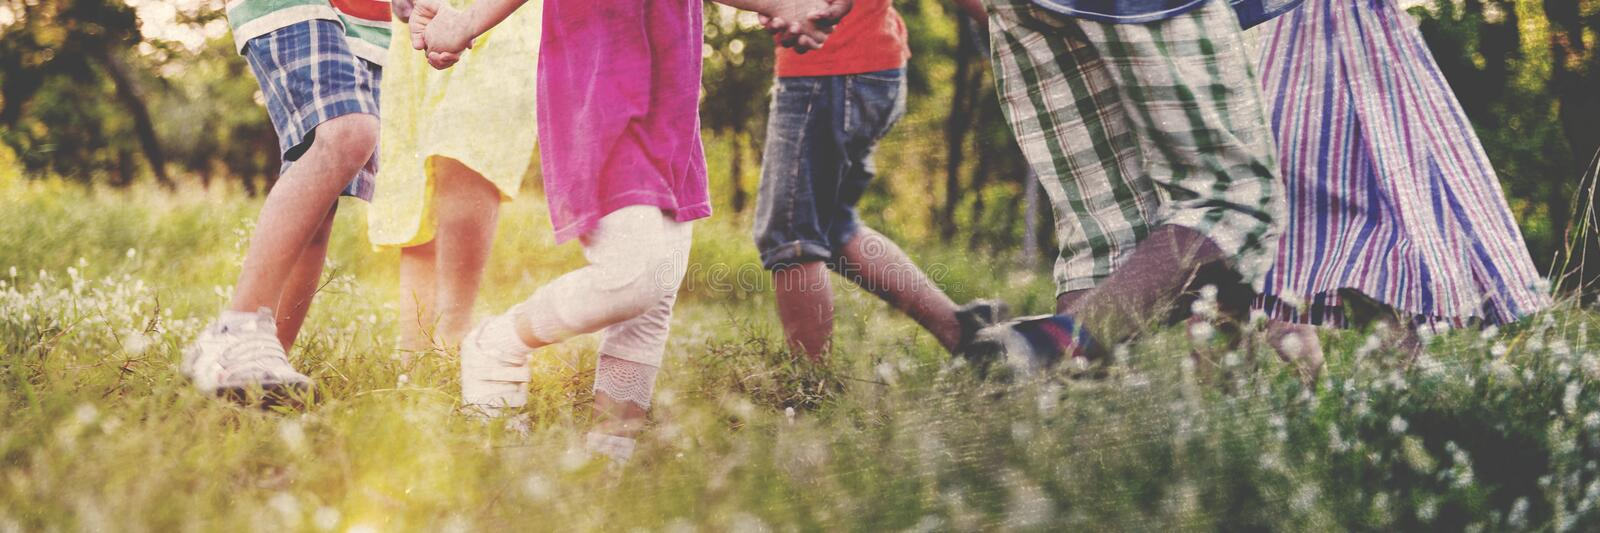 Children Friends Playing Playful Active Concept royalty free stock images